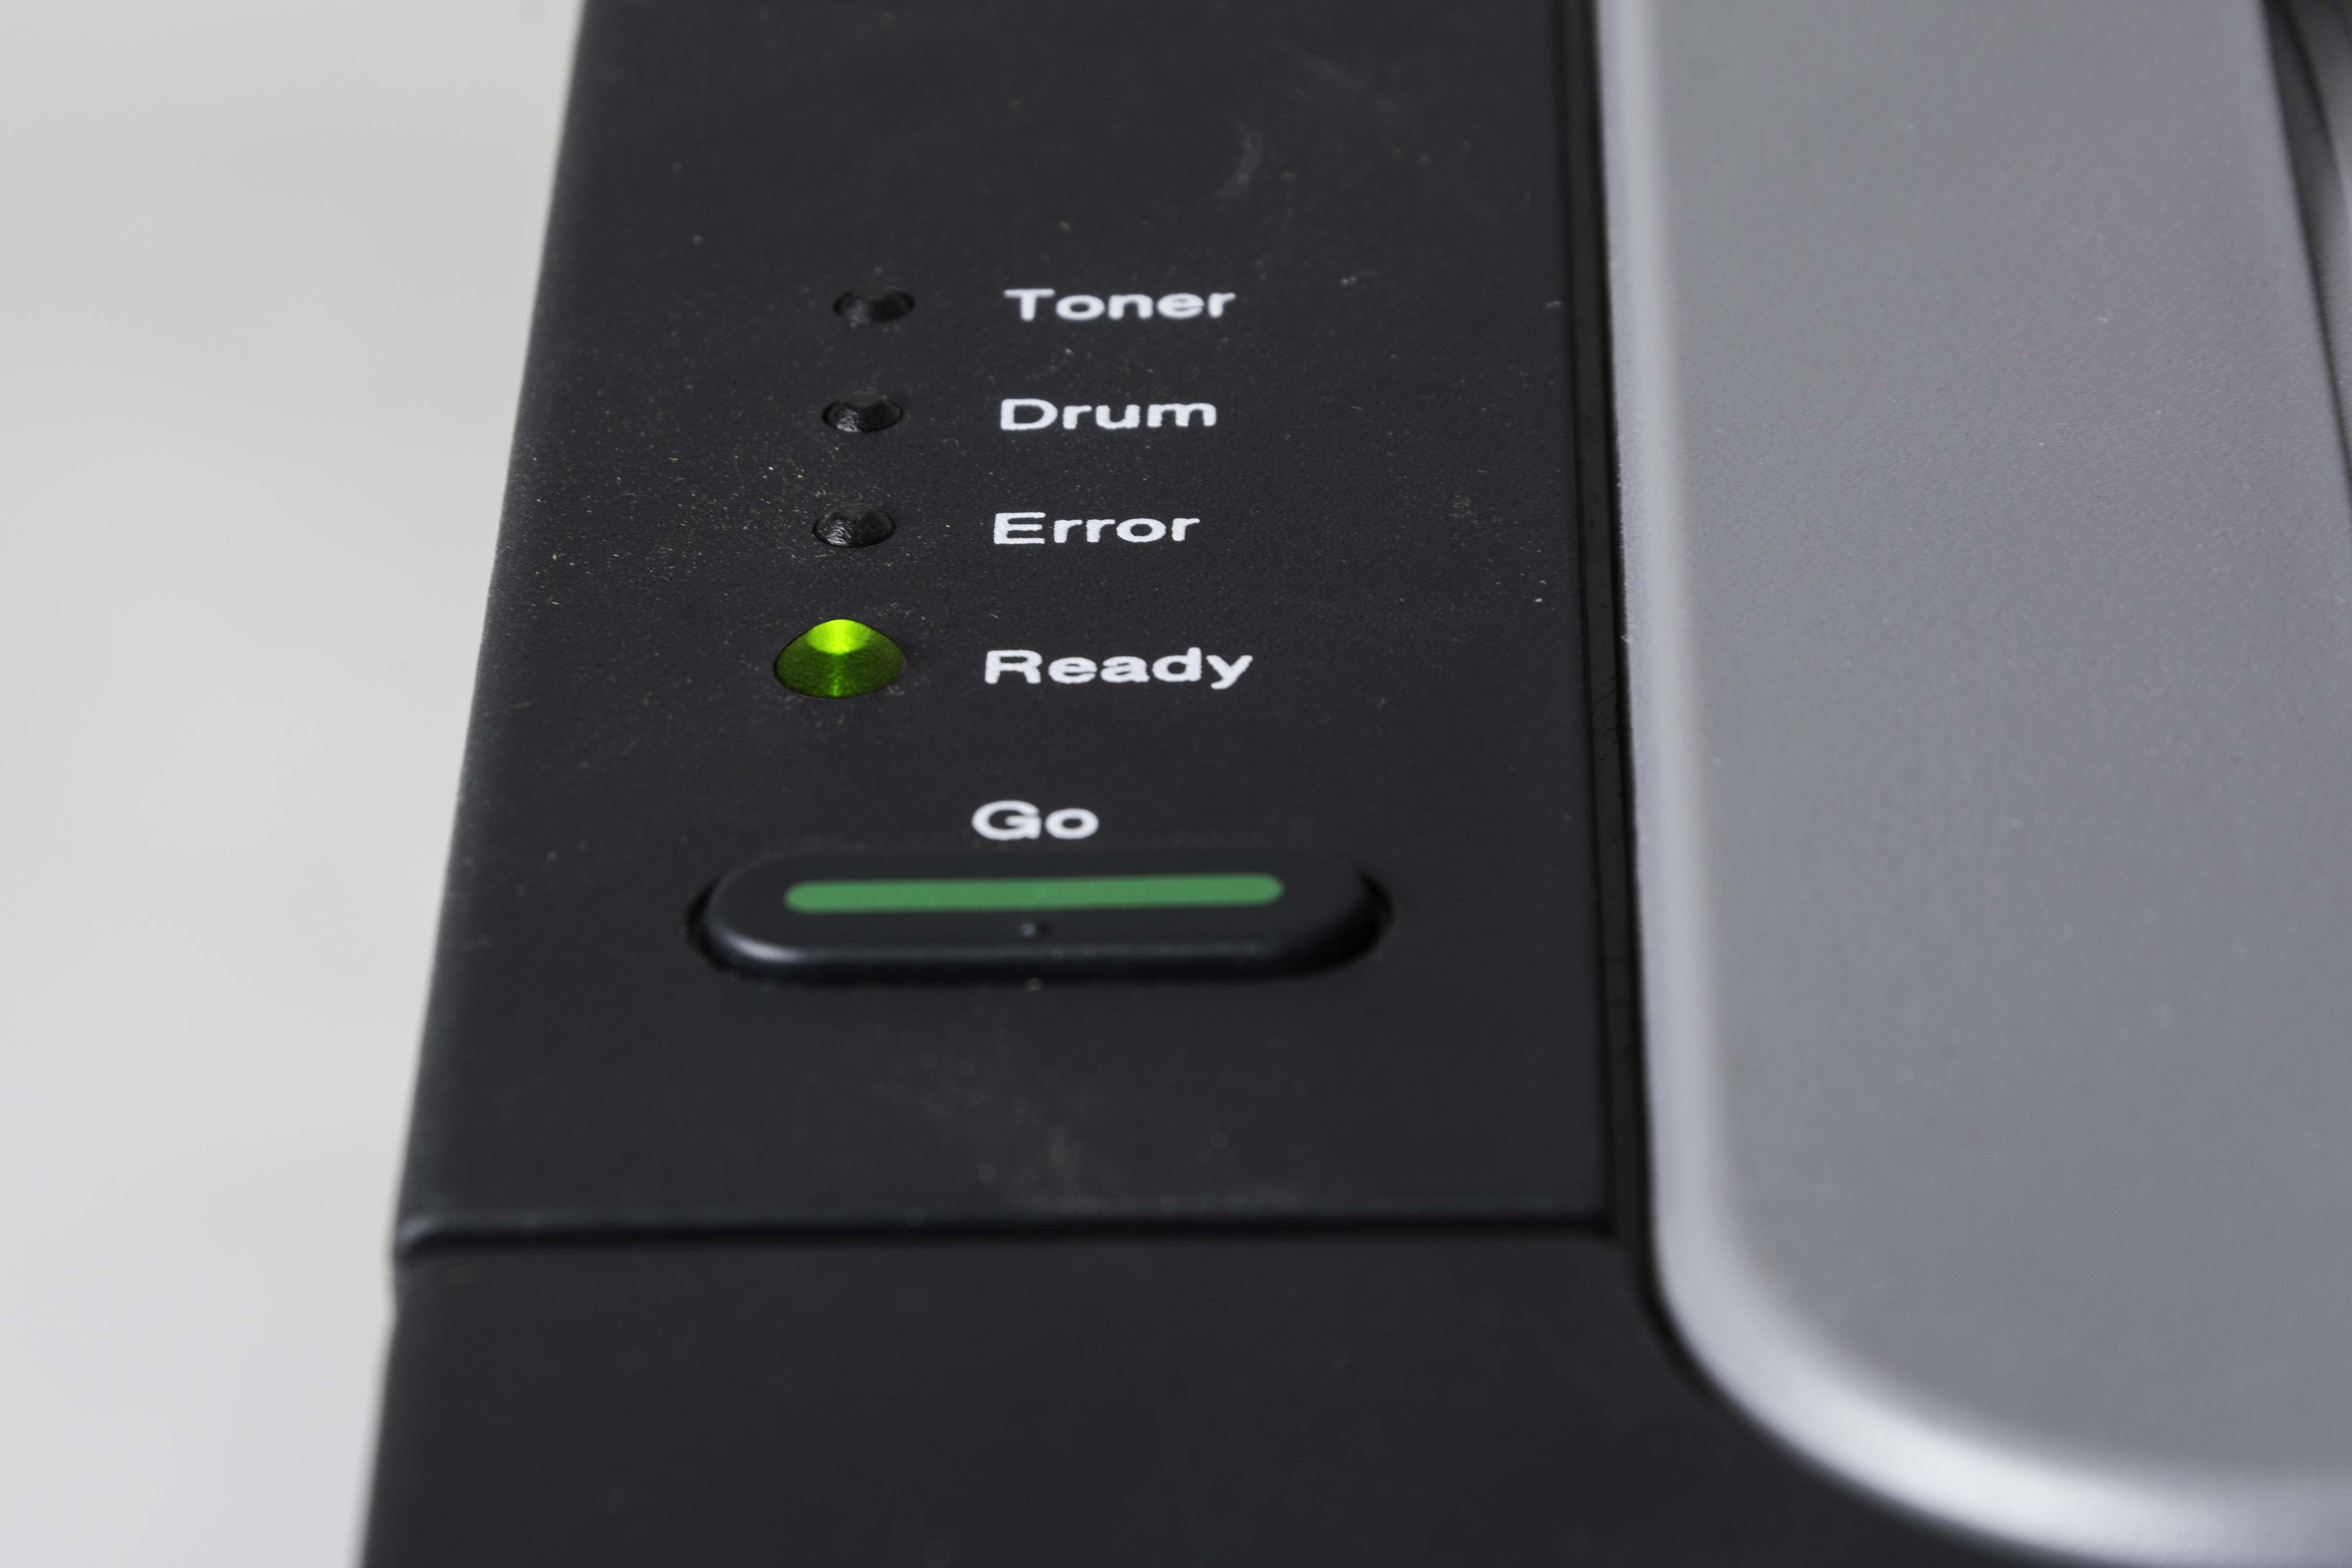 Brother HL-2240 printer control panel